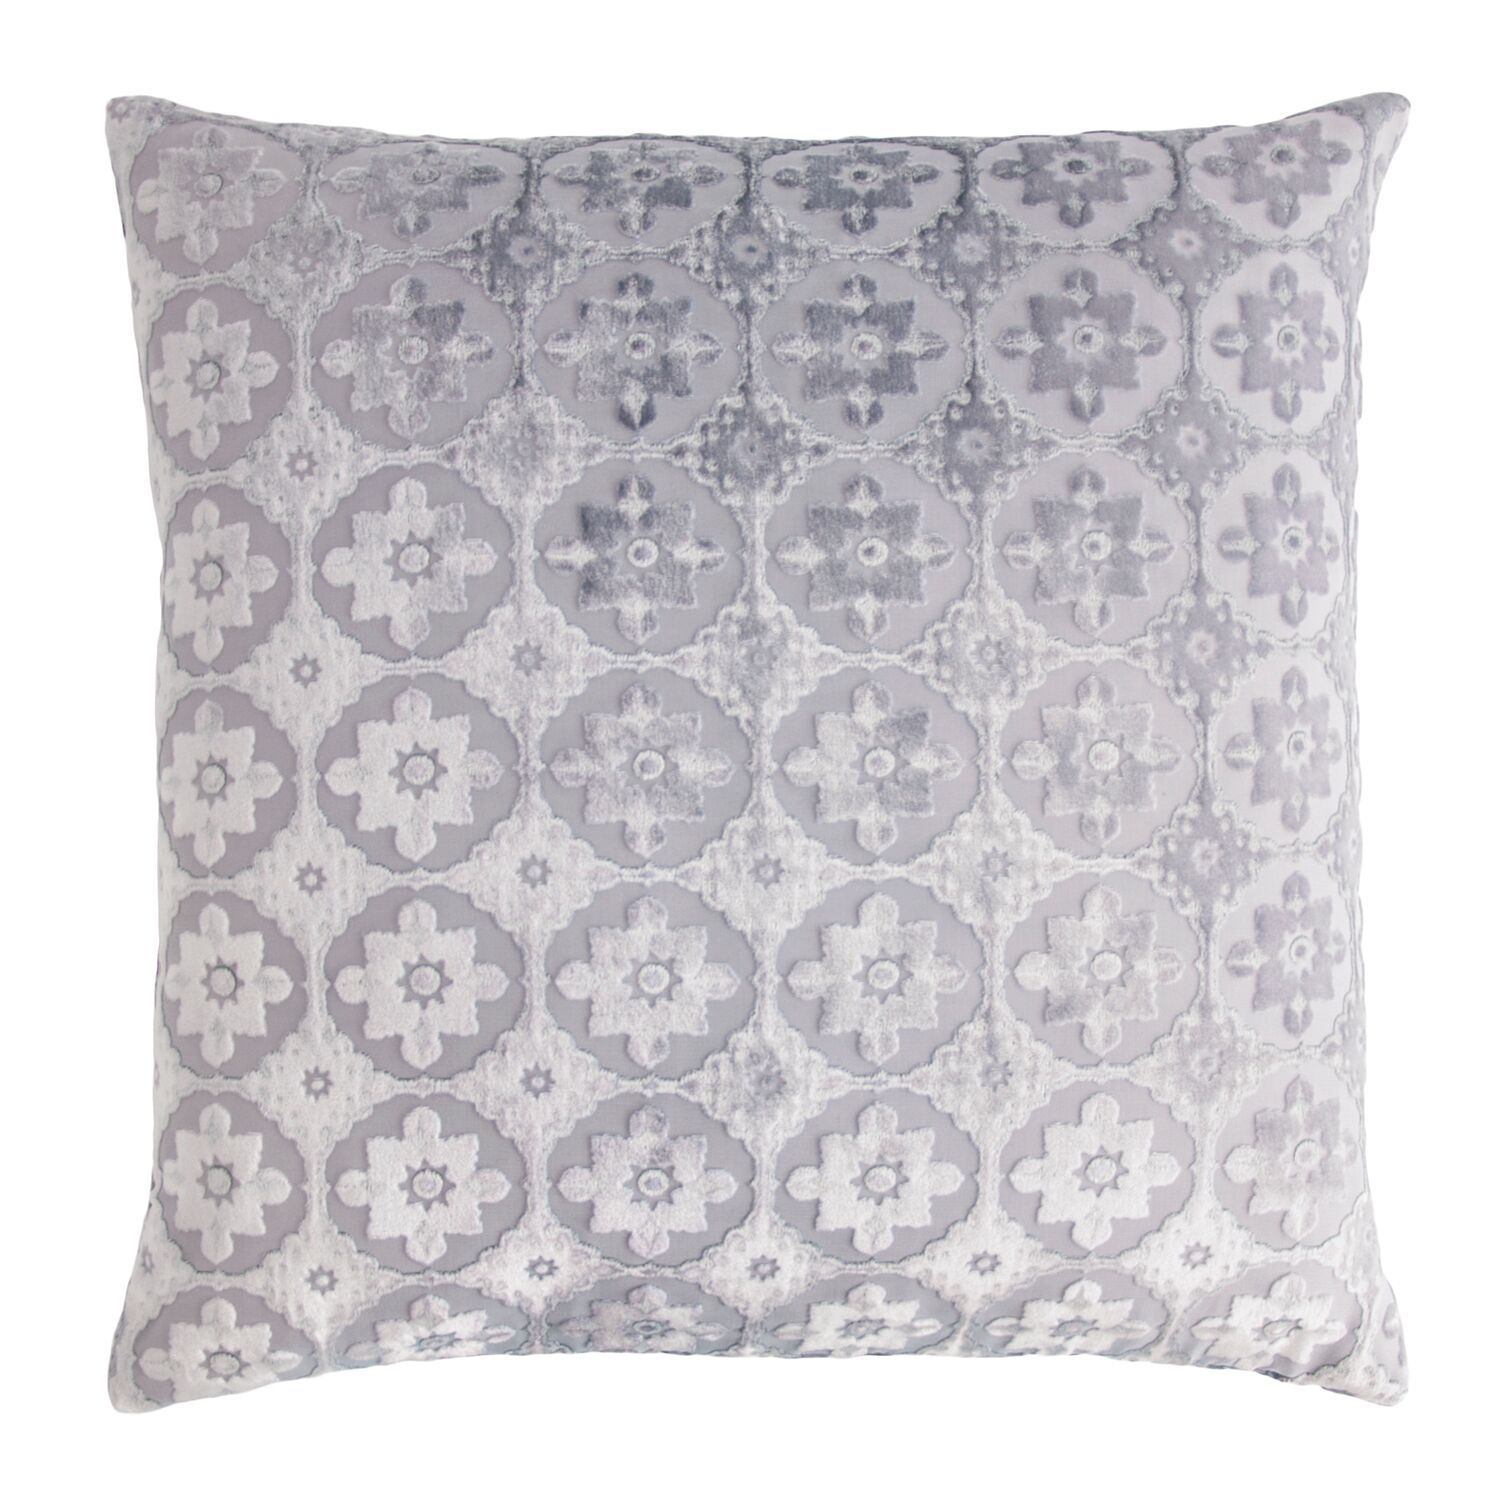 Small Moroccan Silver Gray Velvet Pillows by Kevin O'Brien Studio | Fig Linens